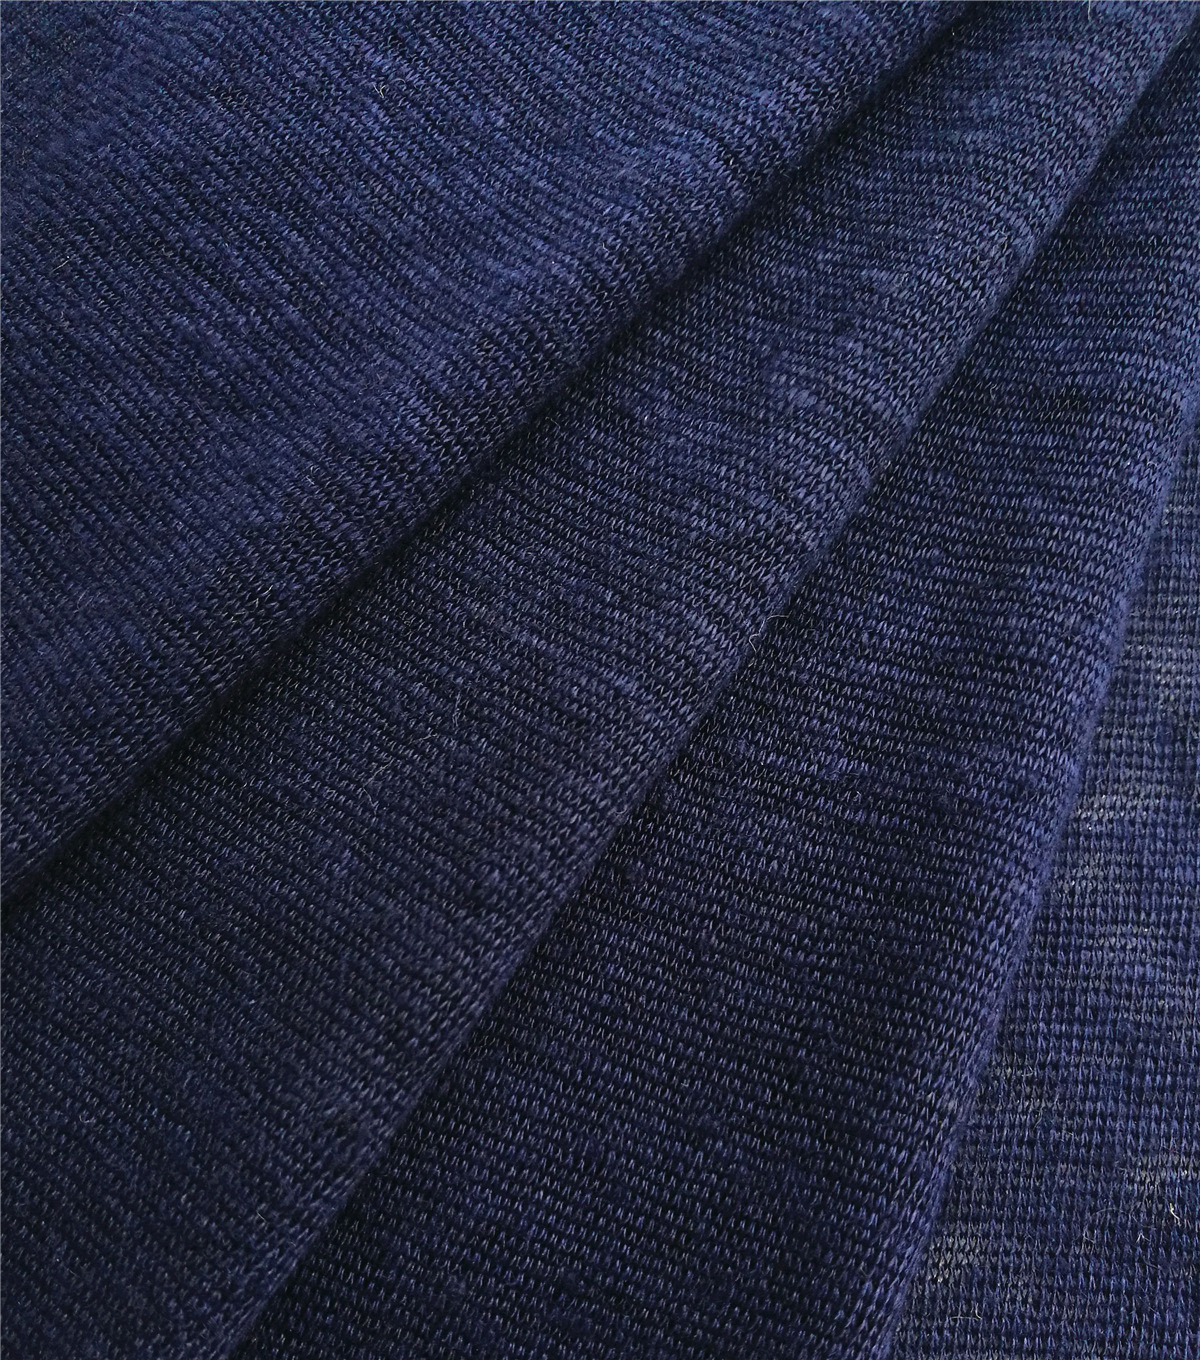 Coastal Lagoon Slub Linen Knit Fabric-Navy